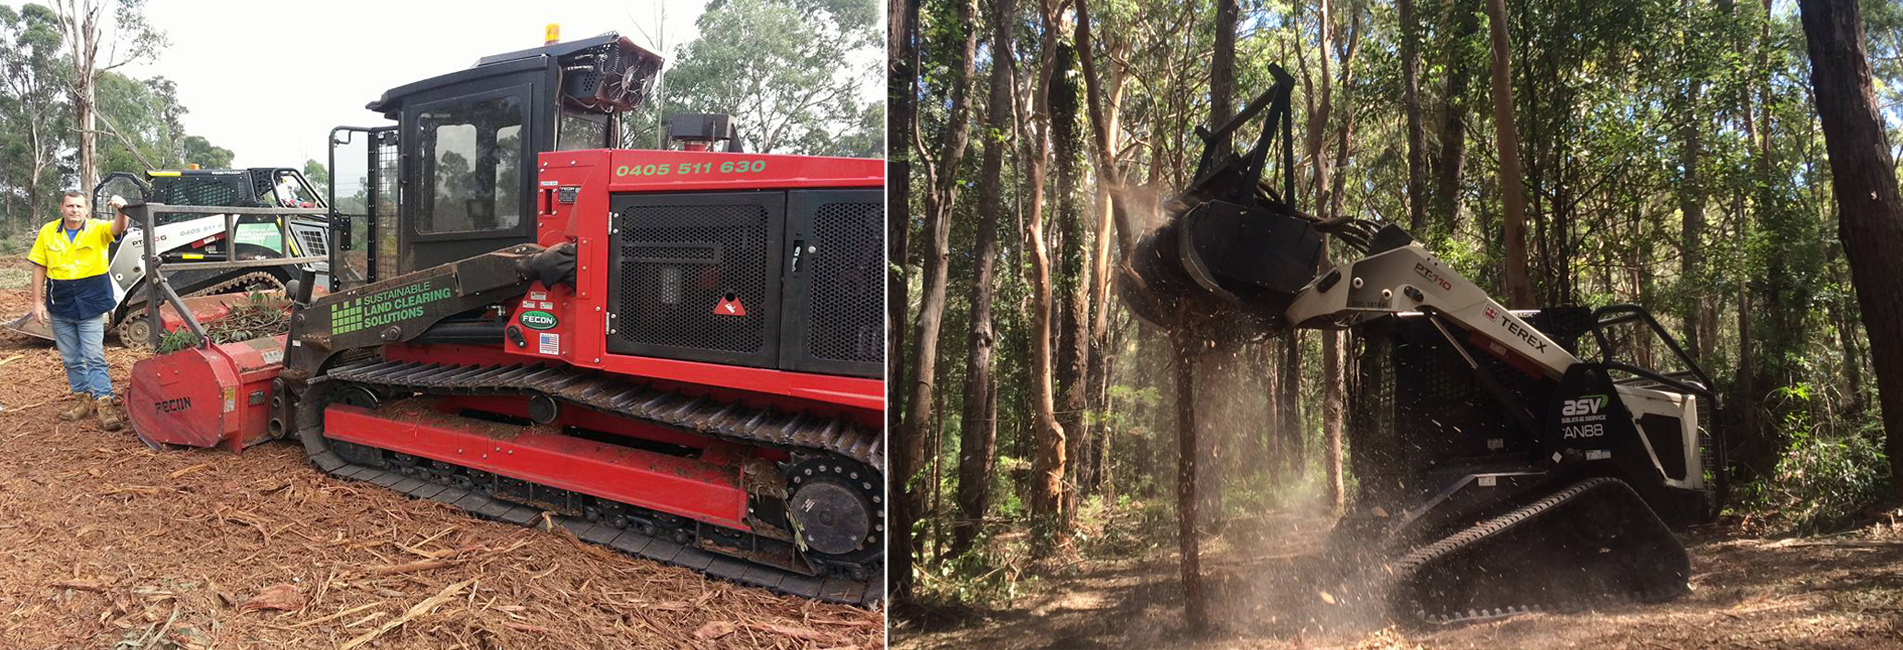 Green Waste Management Gosford, Mulch & Chip Sales Newcastle, Excavations Tuggerah, Tree Surgery Woy Woy, Fence Line Clearing Bateau Bay, Woodchipping Central Coast